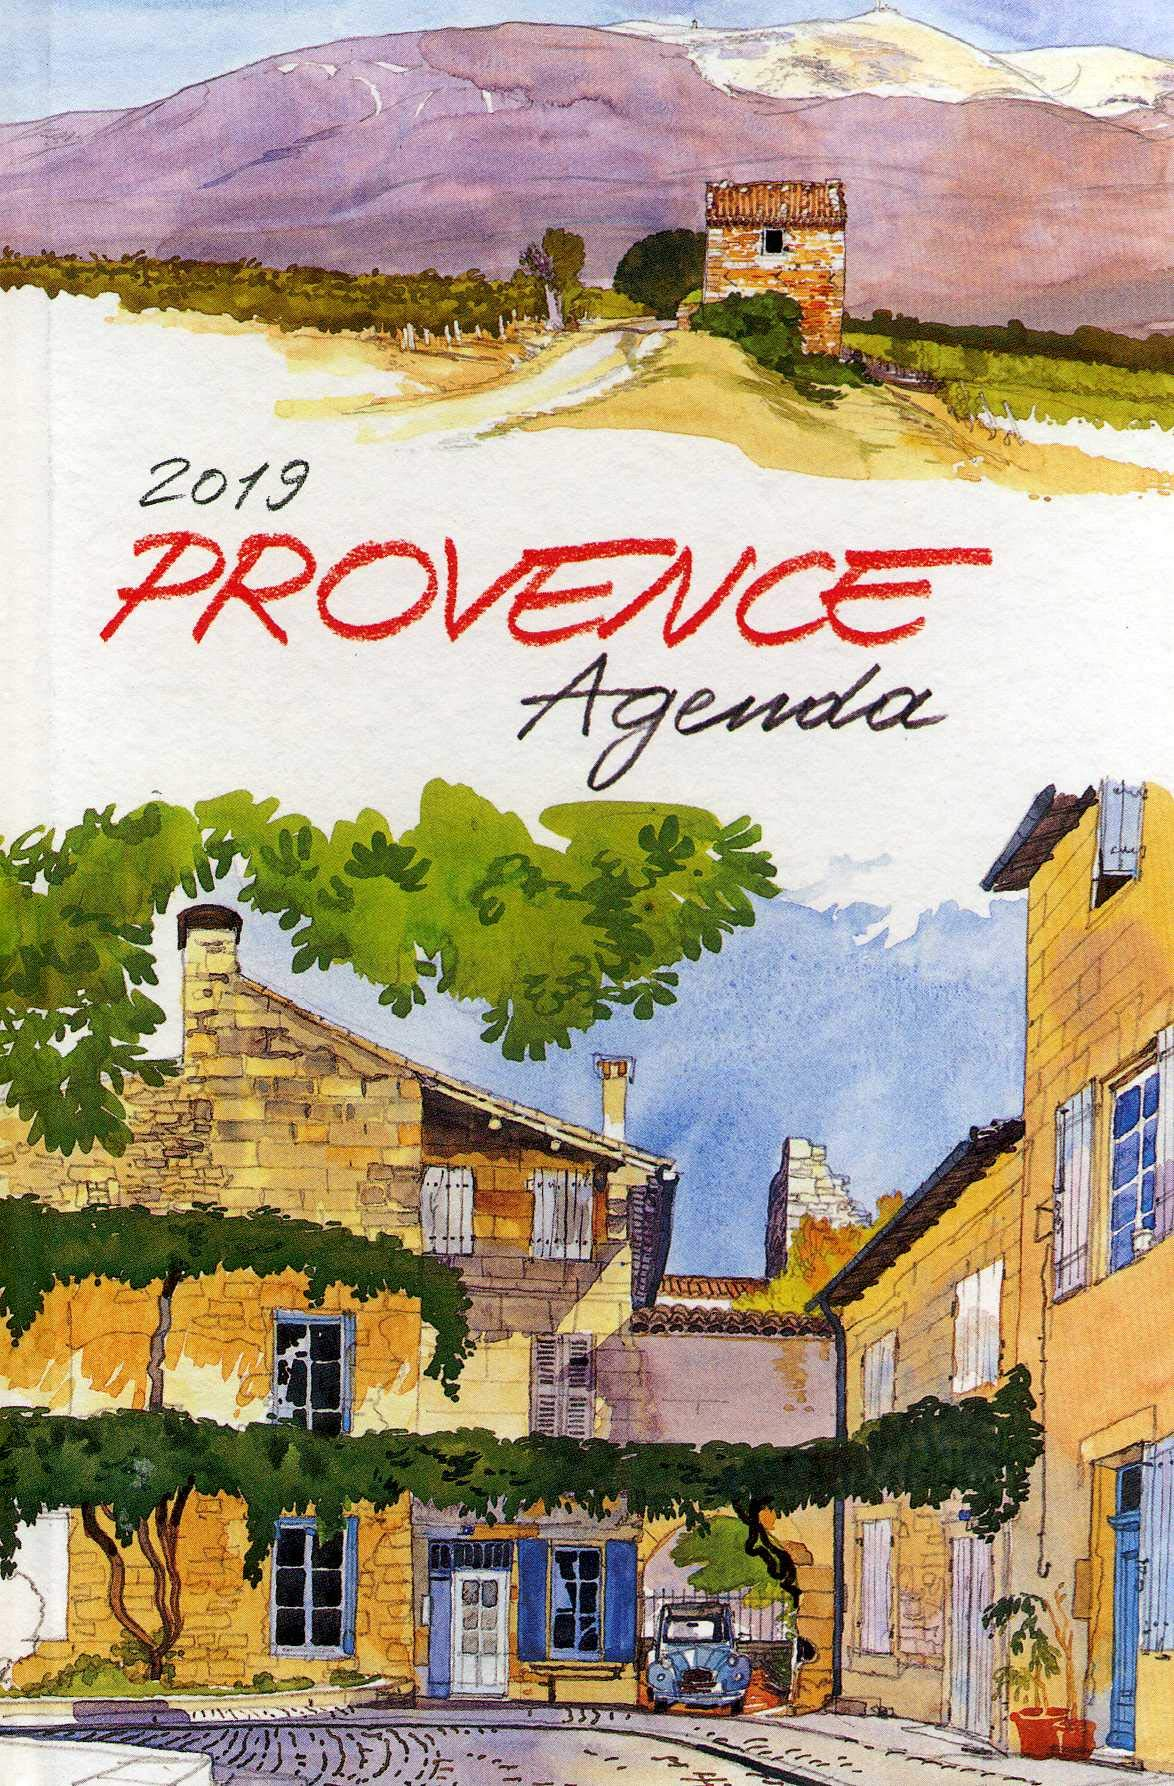 Provence Agenda 2019: Edition Didier Millet: 9789814610674 ...